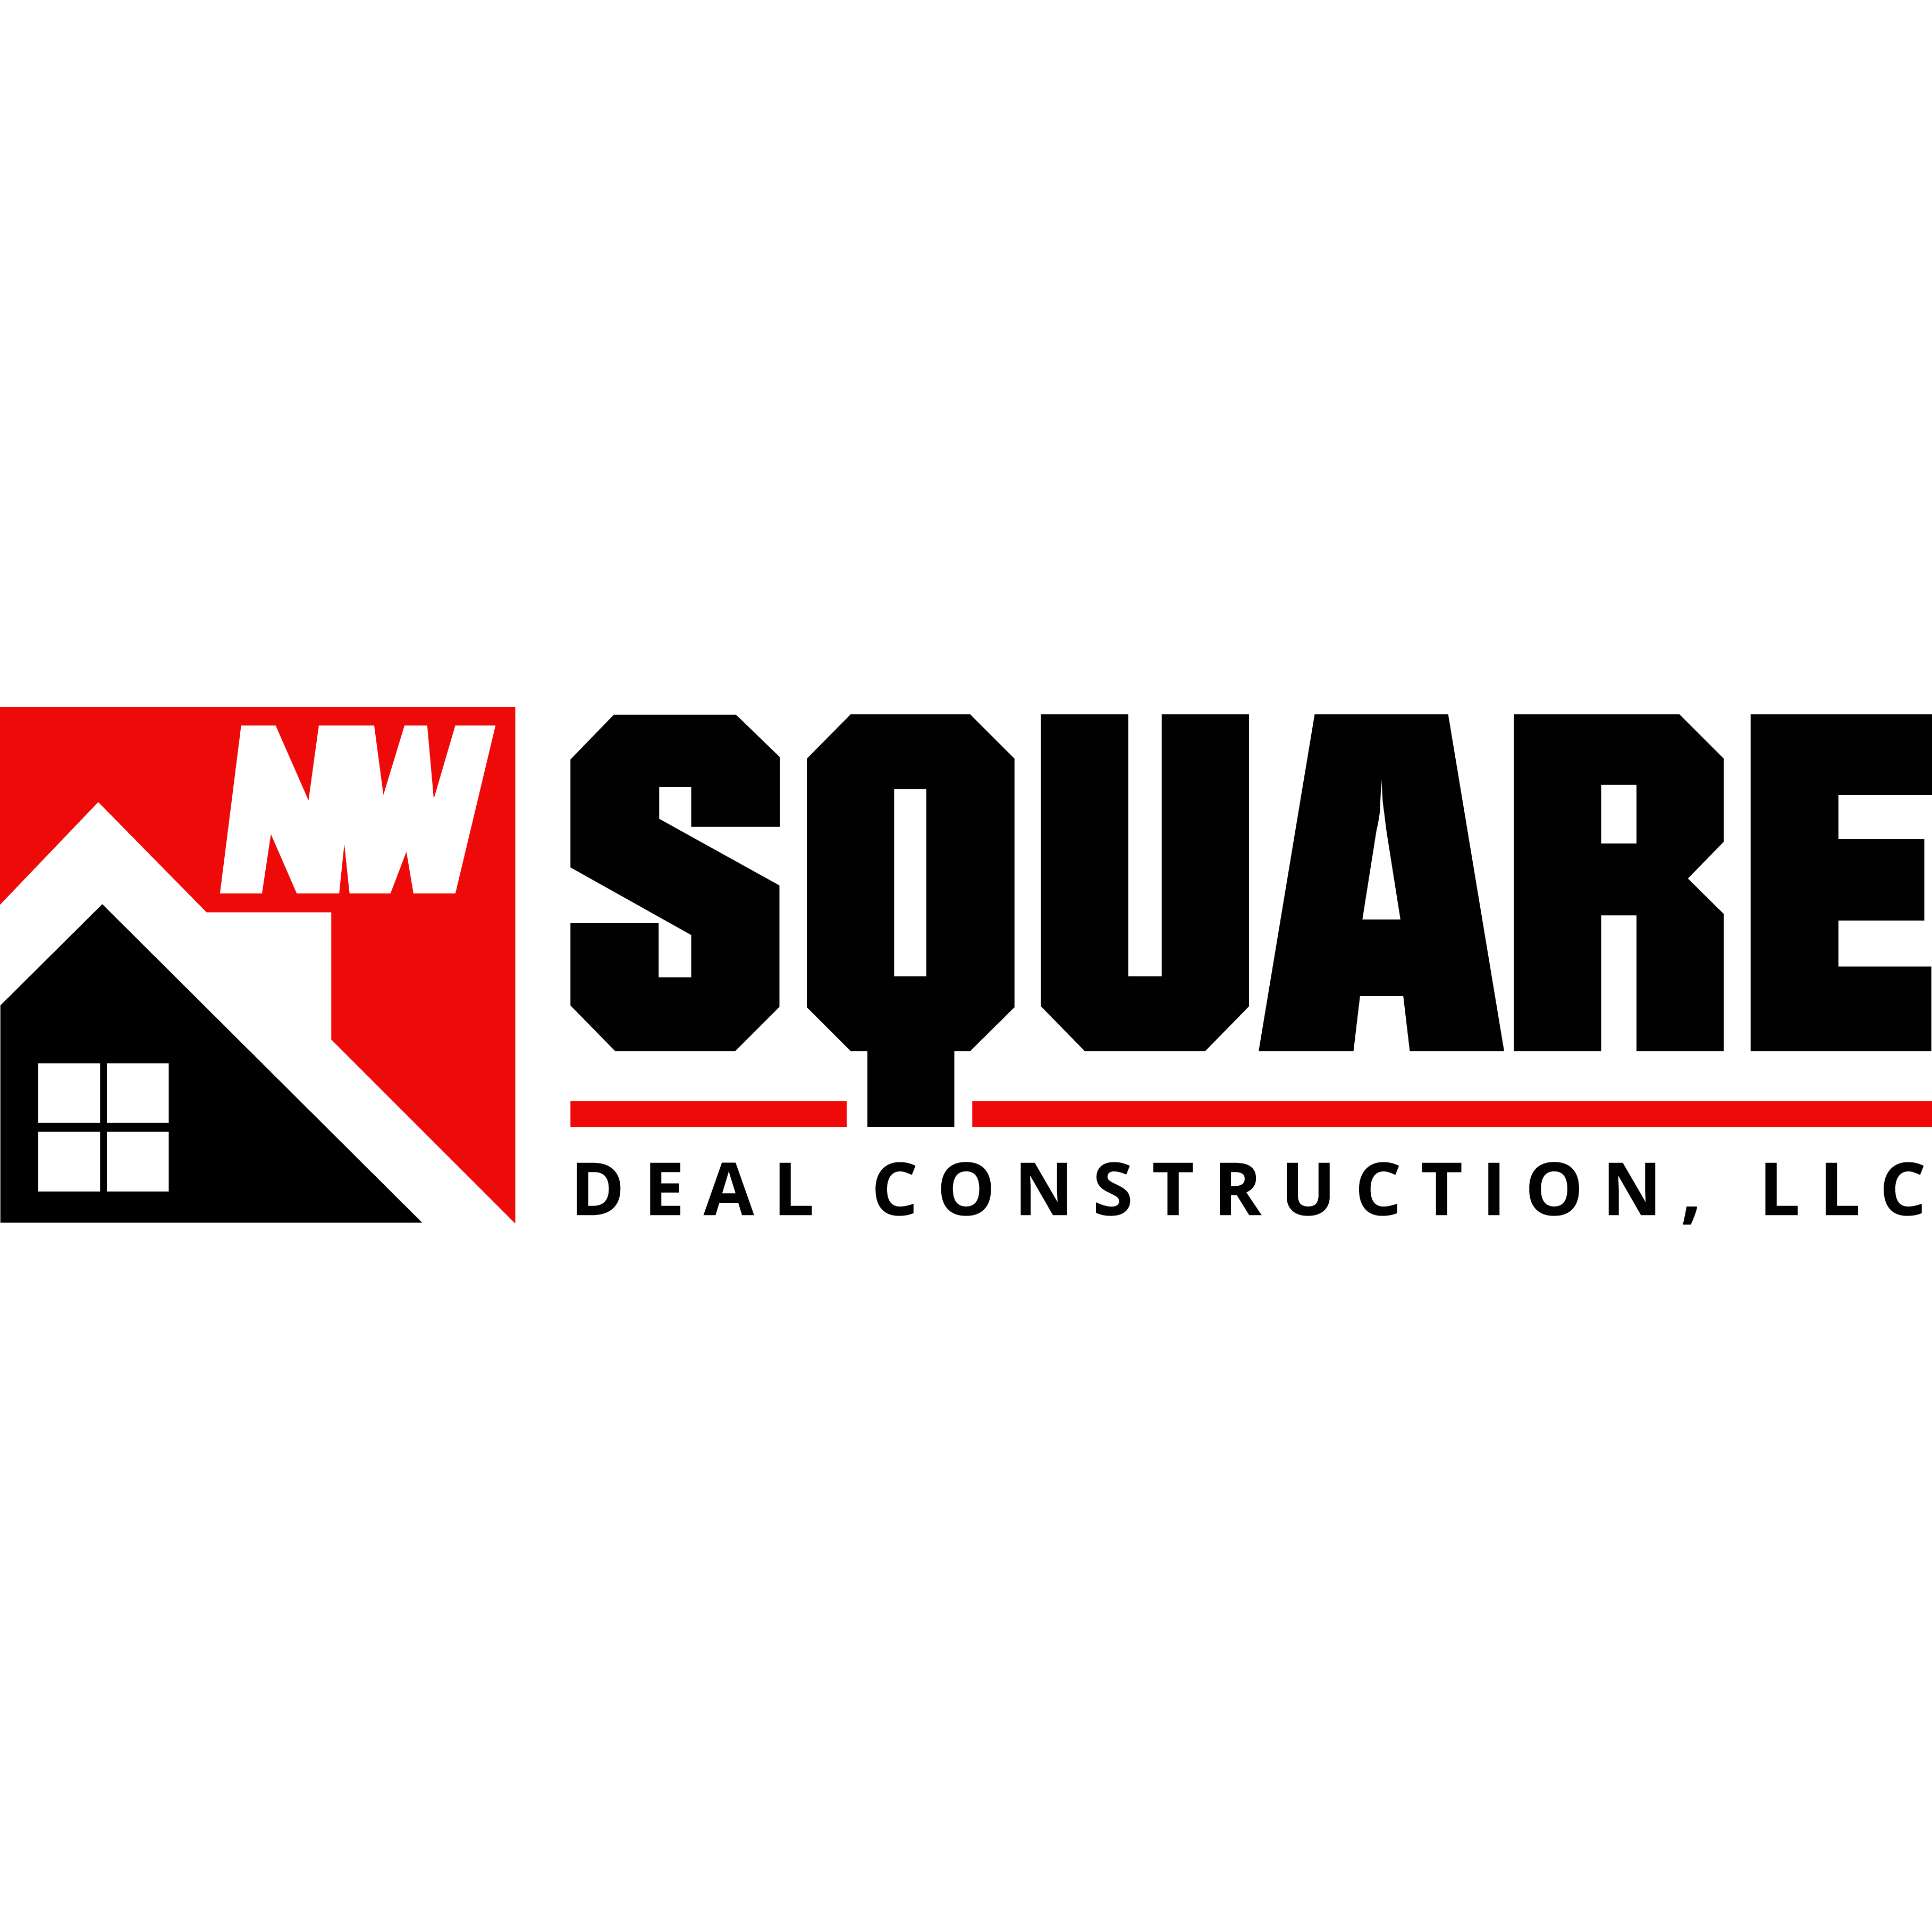 NW Square Deal Construction